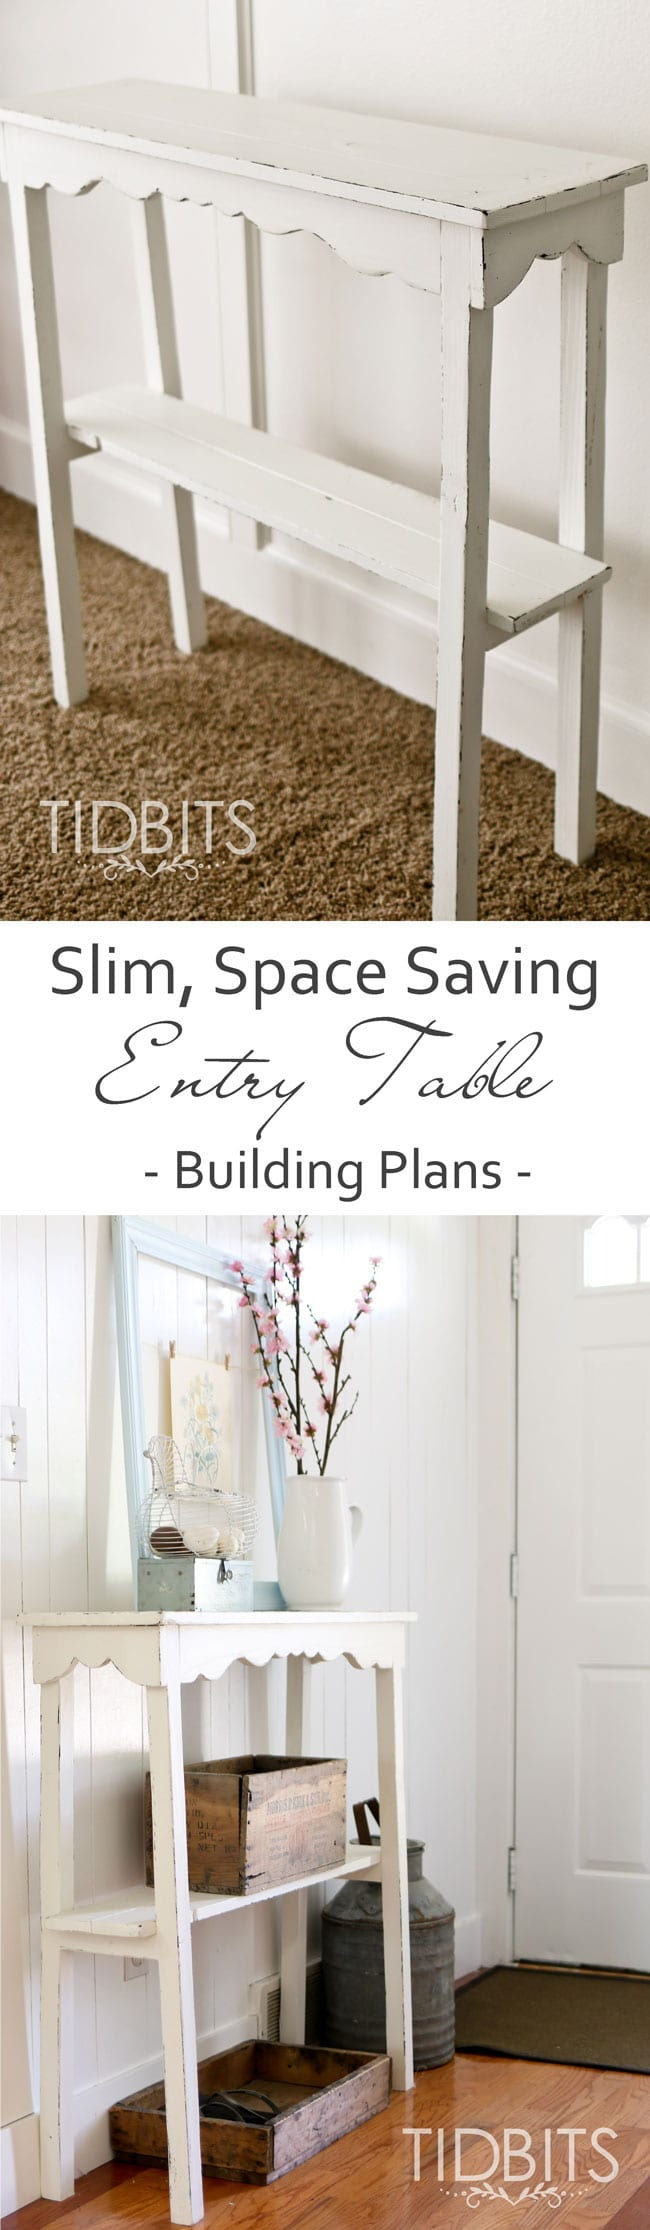 Super slim, space saving entry table building plans. Perfect for small areas and to add touches of seasonal decor.